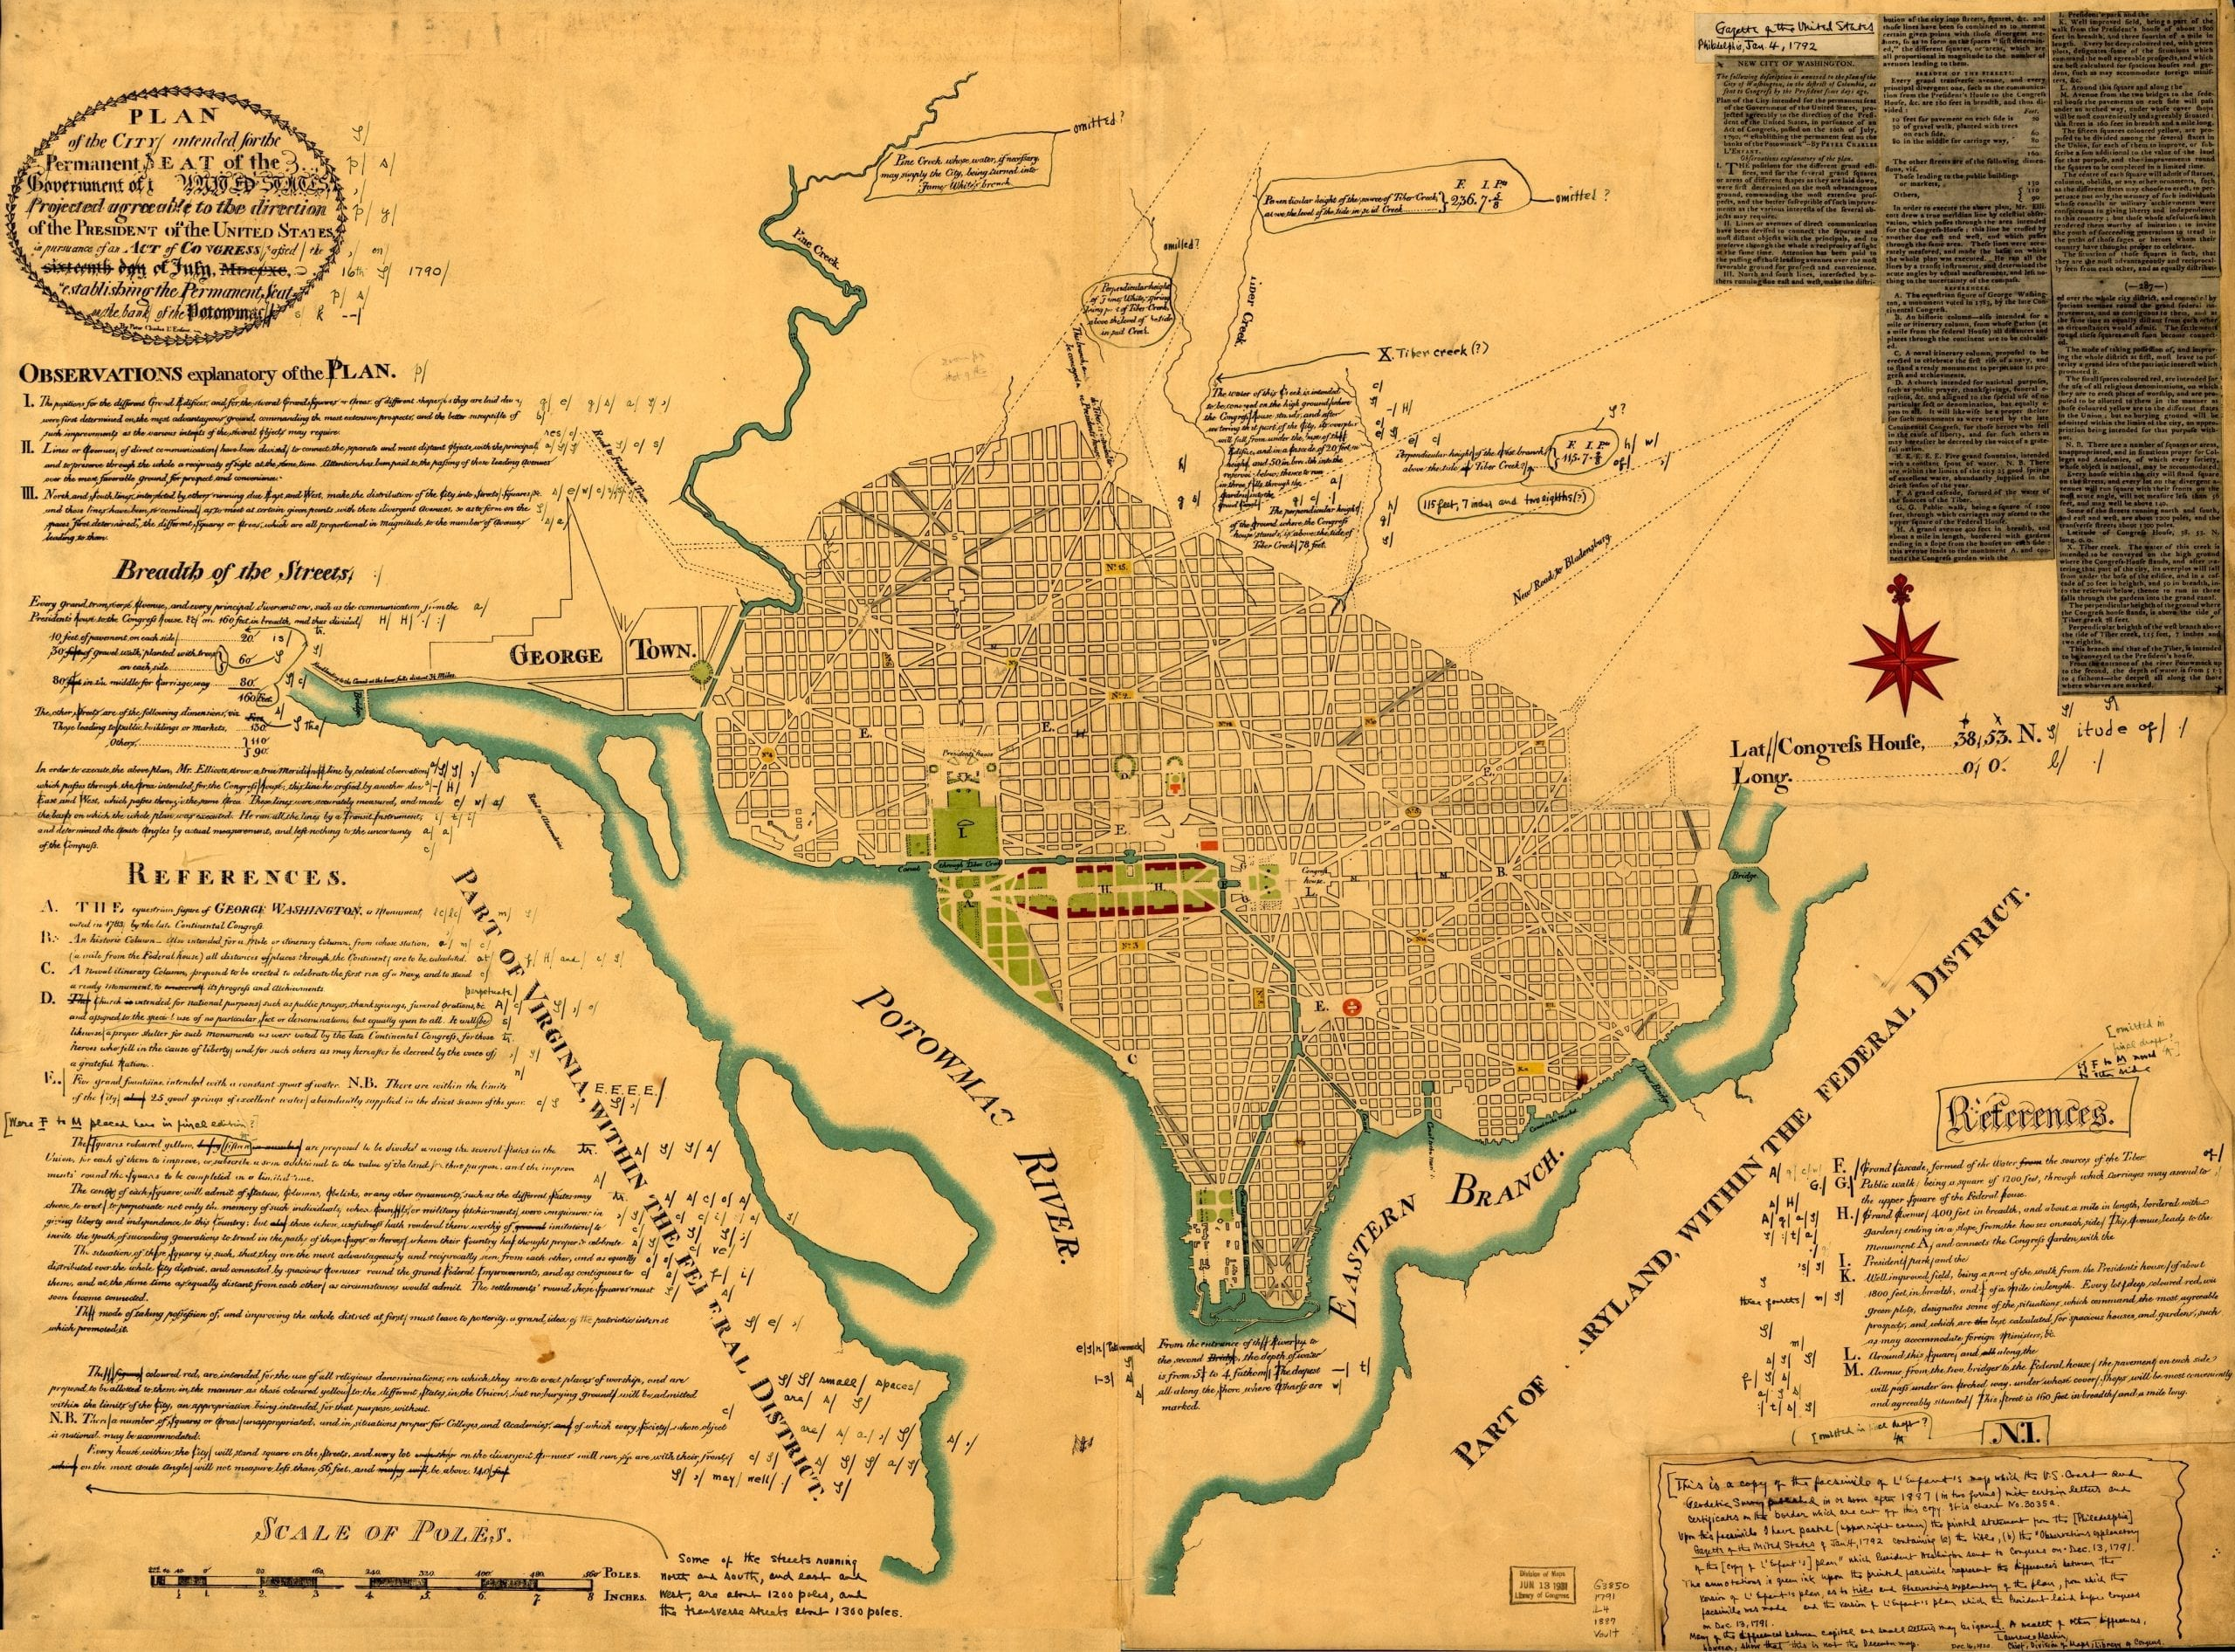 Early map of the District of Columbia - Plan of the city intended for the permanent seat of the government of the United States...